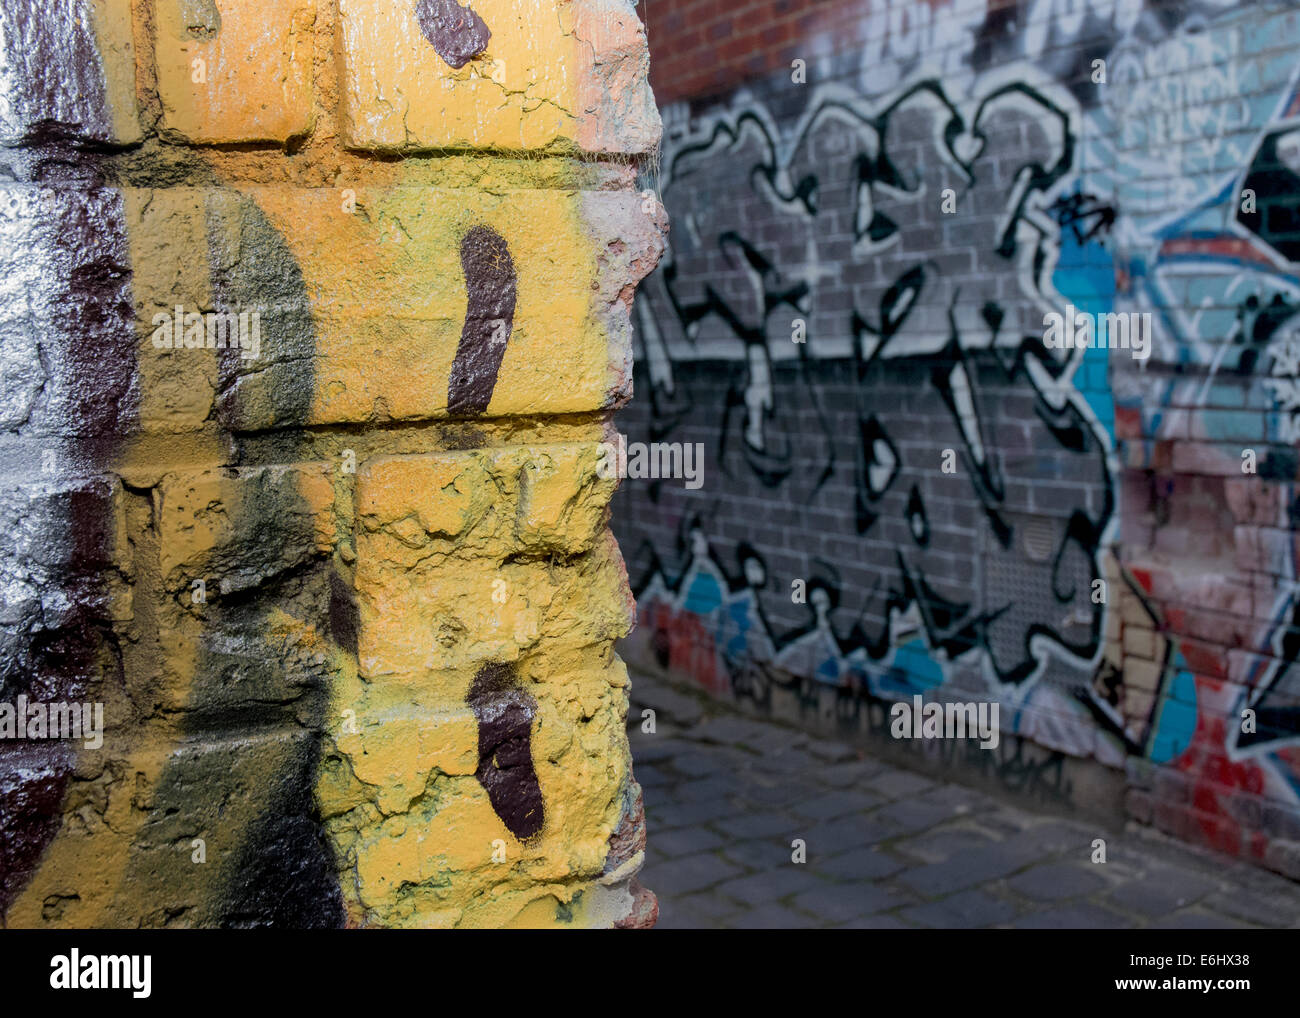 Melbourne Alley Stock Photos & Melbourne Alley Stock Images - Alamy